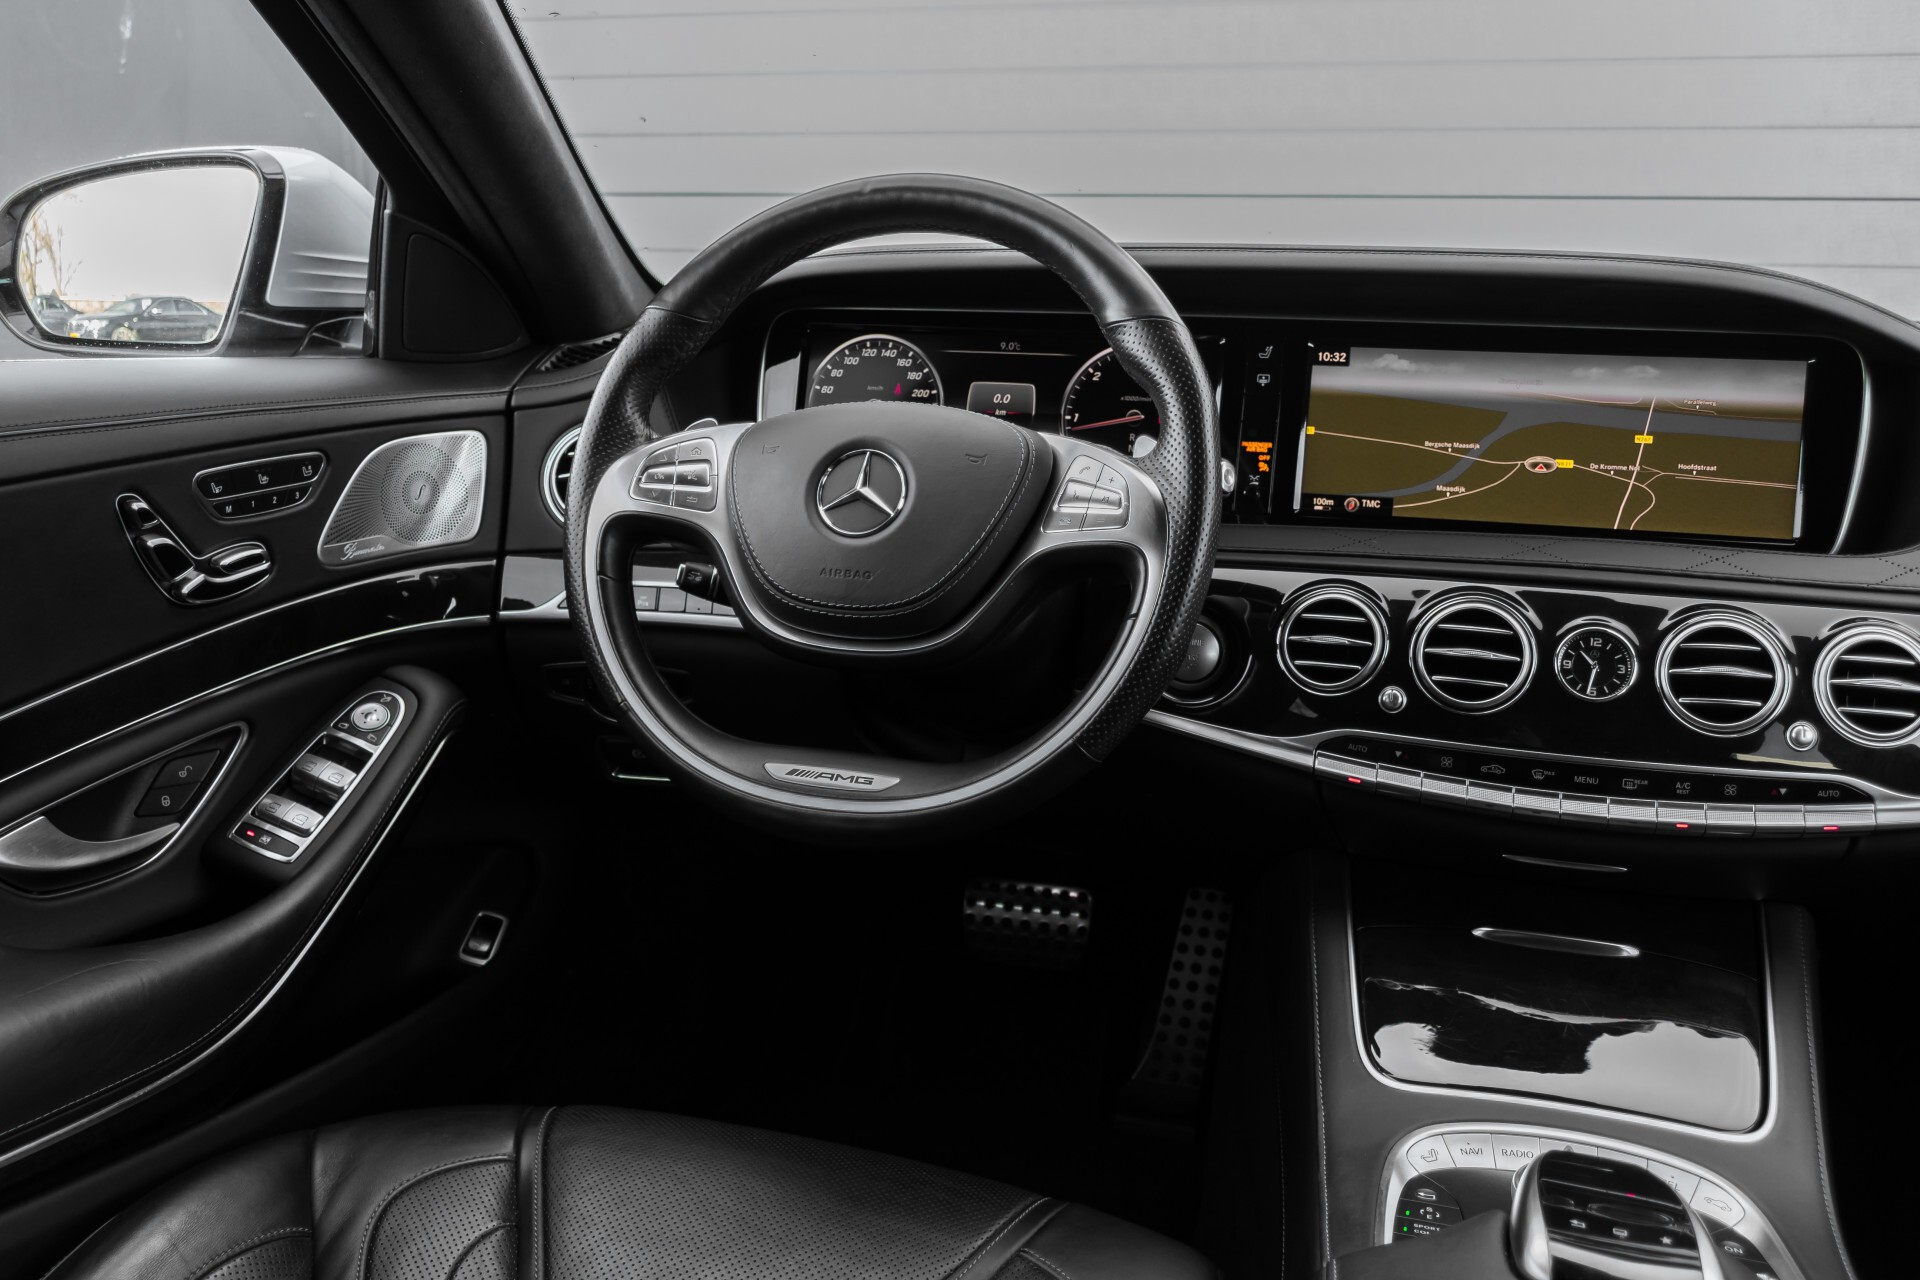 Mercedes-Benz S-Klasse 350 Bluetec 4-M AMG Plus Exclusive Distronic/Keyless/Panorama Aut7 Foto 7